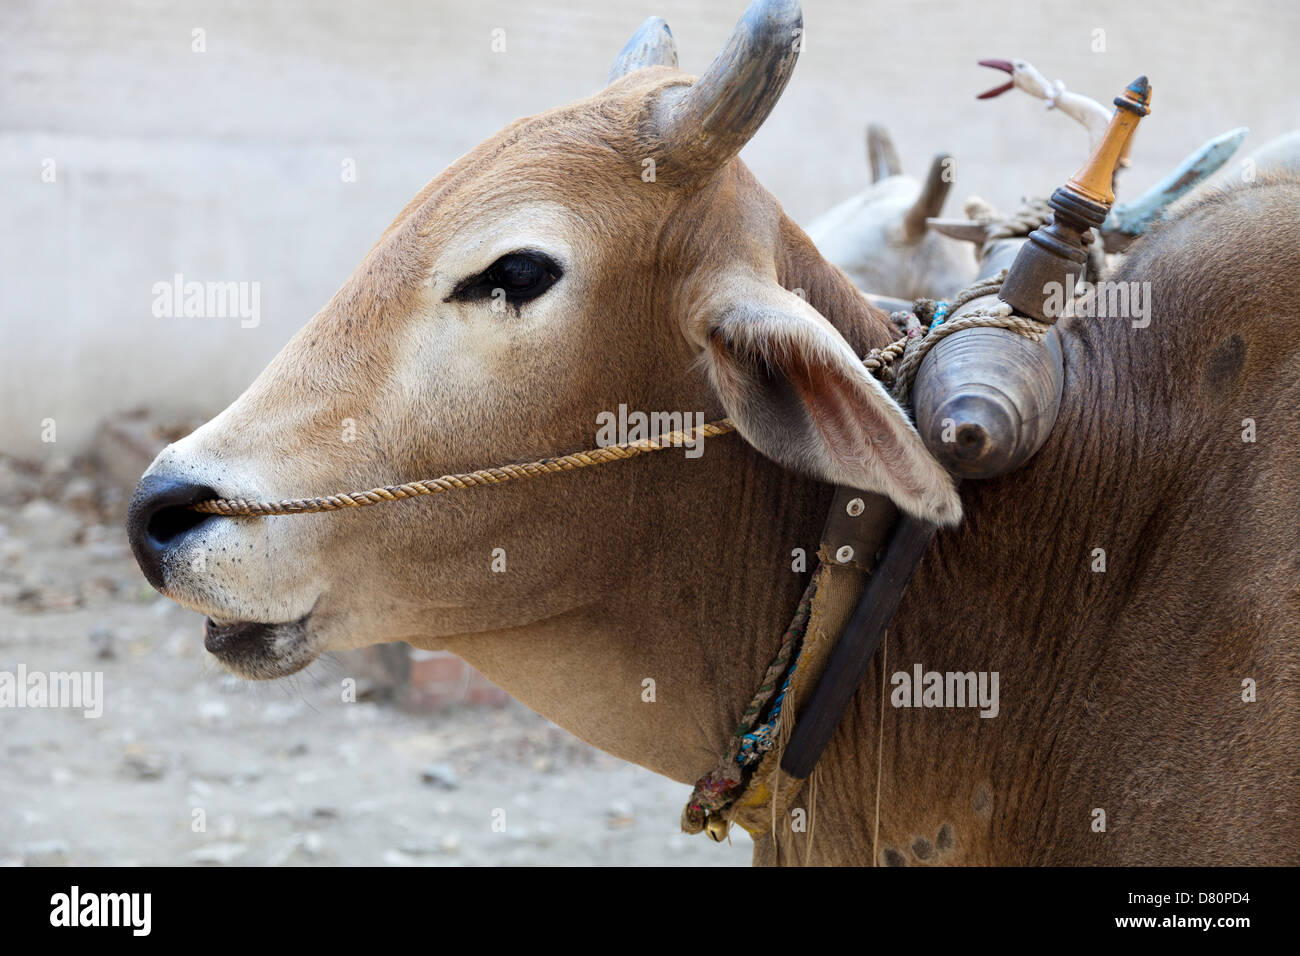 Bullock resting by his cart in Mingun, Myanmar 2 - Stock Image